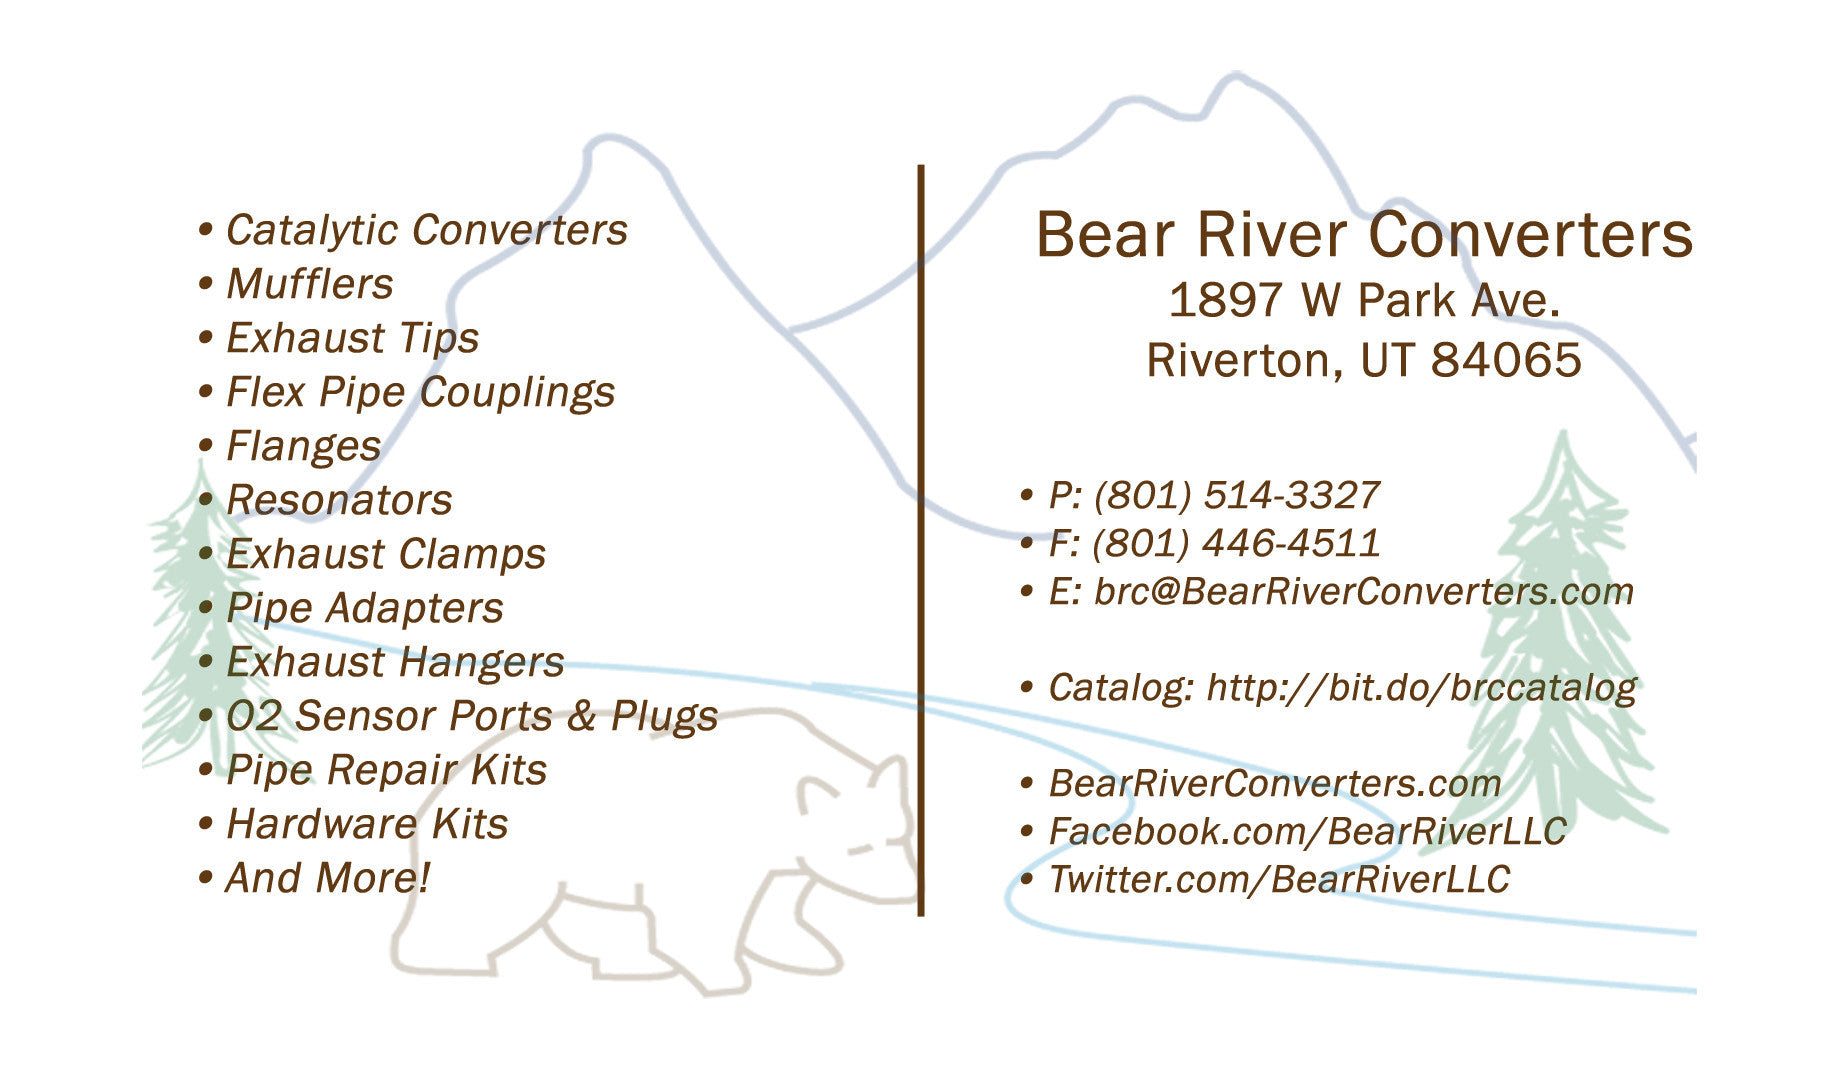 Bear River Converters - Worldwide Wholesale Exhaust Distributor